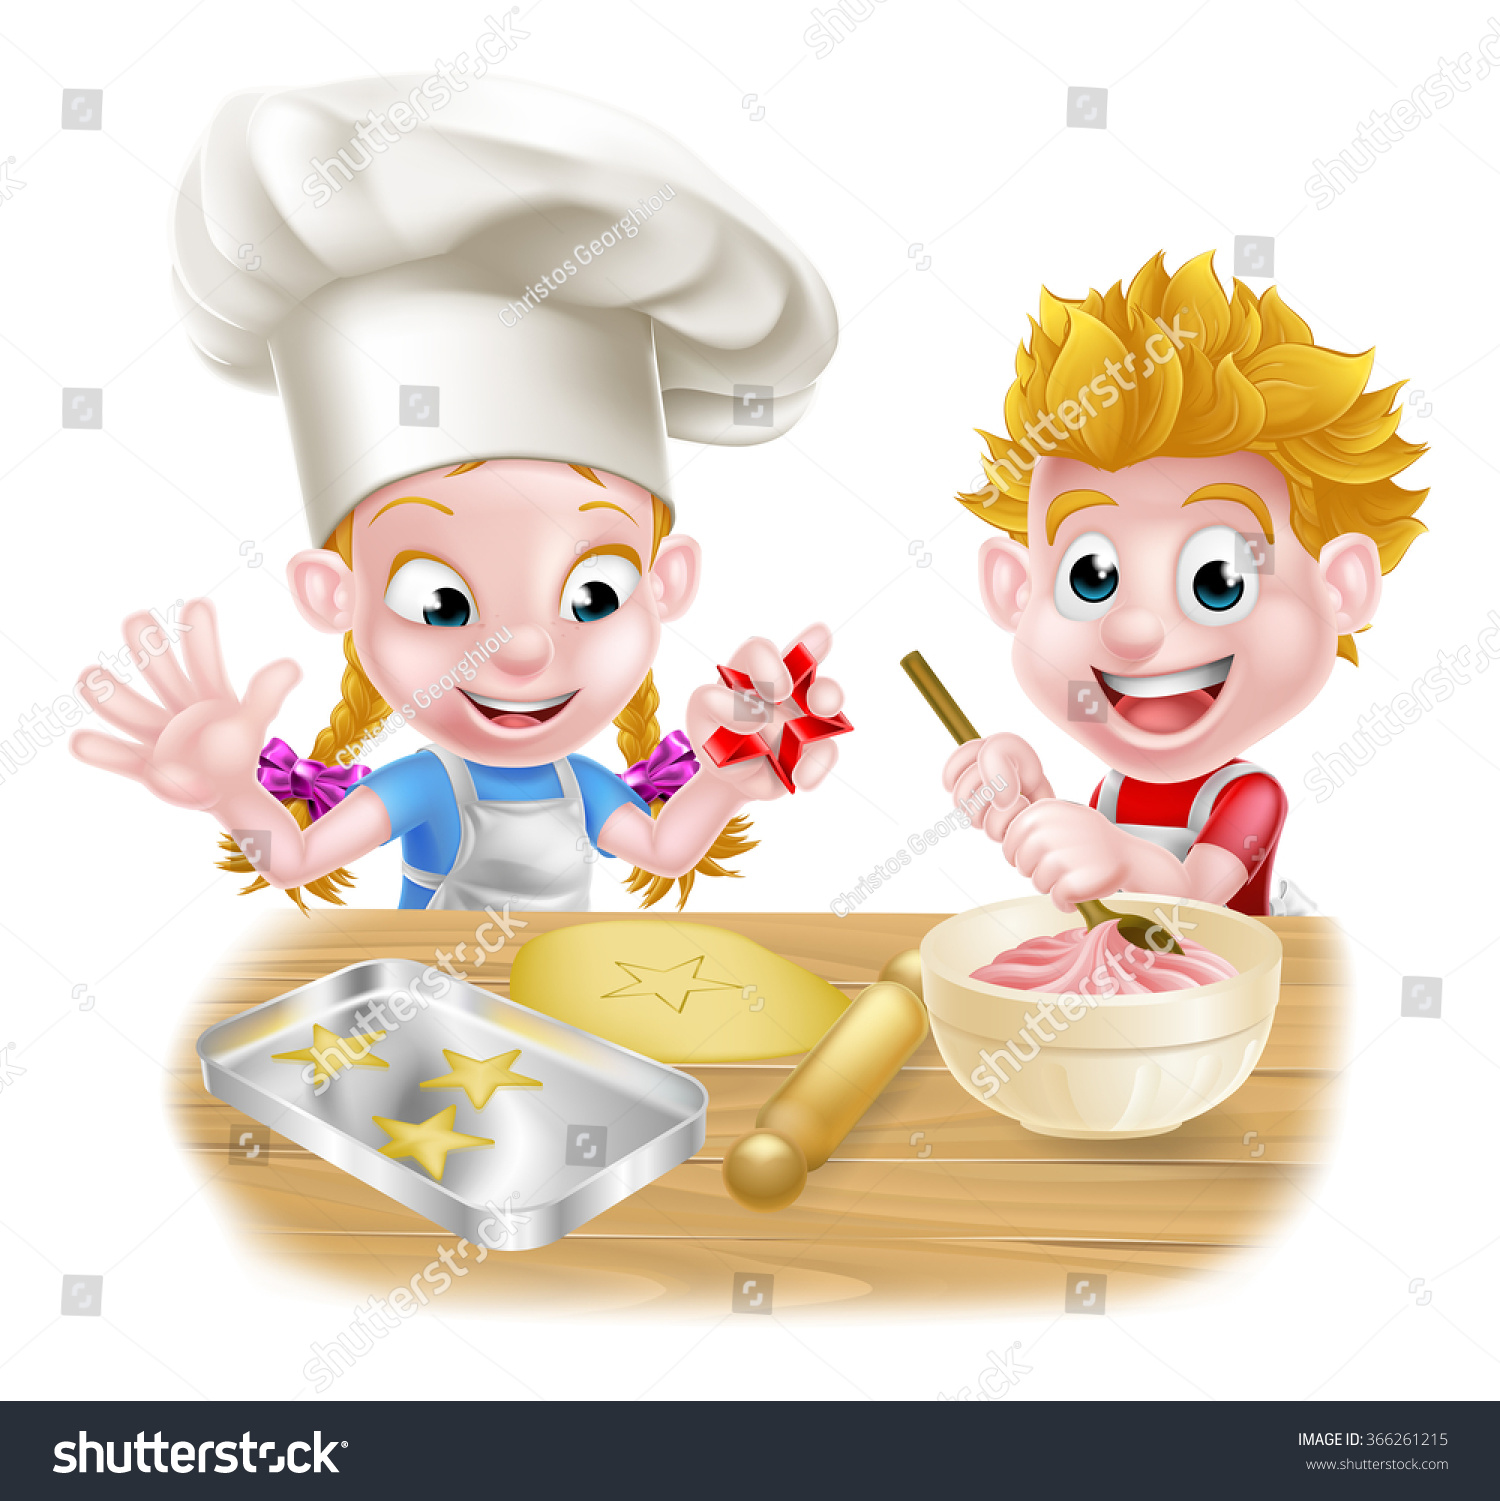 Selection of cartoons on cooking kitchens food and eating - Cartoon Children Baking And Cooking As Chefs In The Kitchen